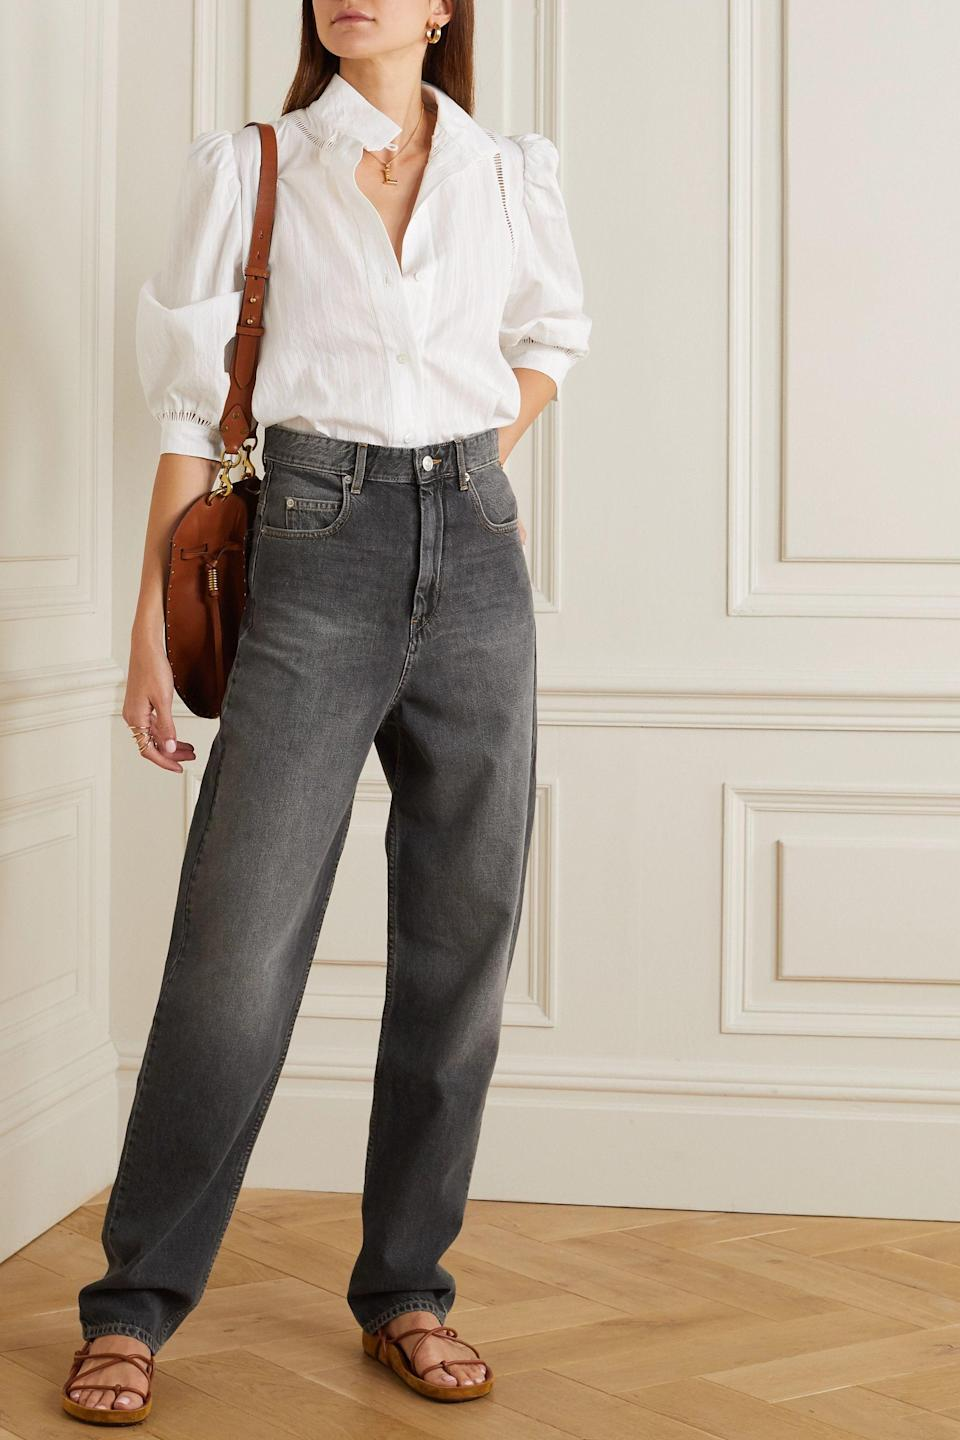 """<p><strong>ISABEL MARANT ÉTOILE</strong></p><p>net-a-porter.com</p><p><strong>$145.00</strong></p><p><a href=""""https://go.redirectingat.com?id=74968X1596630&url=https%3A%2F%2Fwww.net-a-porter.com%2Fen-us%2Fshop%2Fproduct%2Fisabel-marant-etoile%2Fclothing%2Fstraight-leg%2Fcorsy-high-rise-tapered-jeans%2F24092600056996705&sref=https%3A%2F%2Fwww.cosmopolitan.com%2Fstyle-beauty%2Ffashion%2Fg36618322%2Fnet-a-porter-spring-sale-2021%2F"""" rel=""""nofollow noopener"""" target=""""_blank"""" data-ylk=""""slk:Shop Now"""" class=""""link rapid-noclick-resp"""">Shop Now</a></p><p>Something that's impossible to own too many of: a dark wash jean.</p>"""